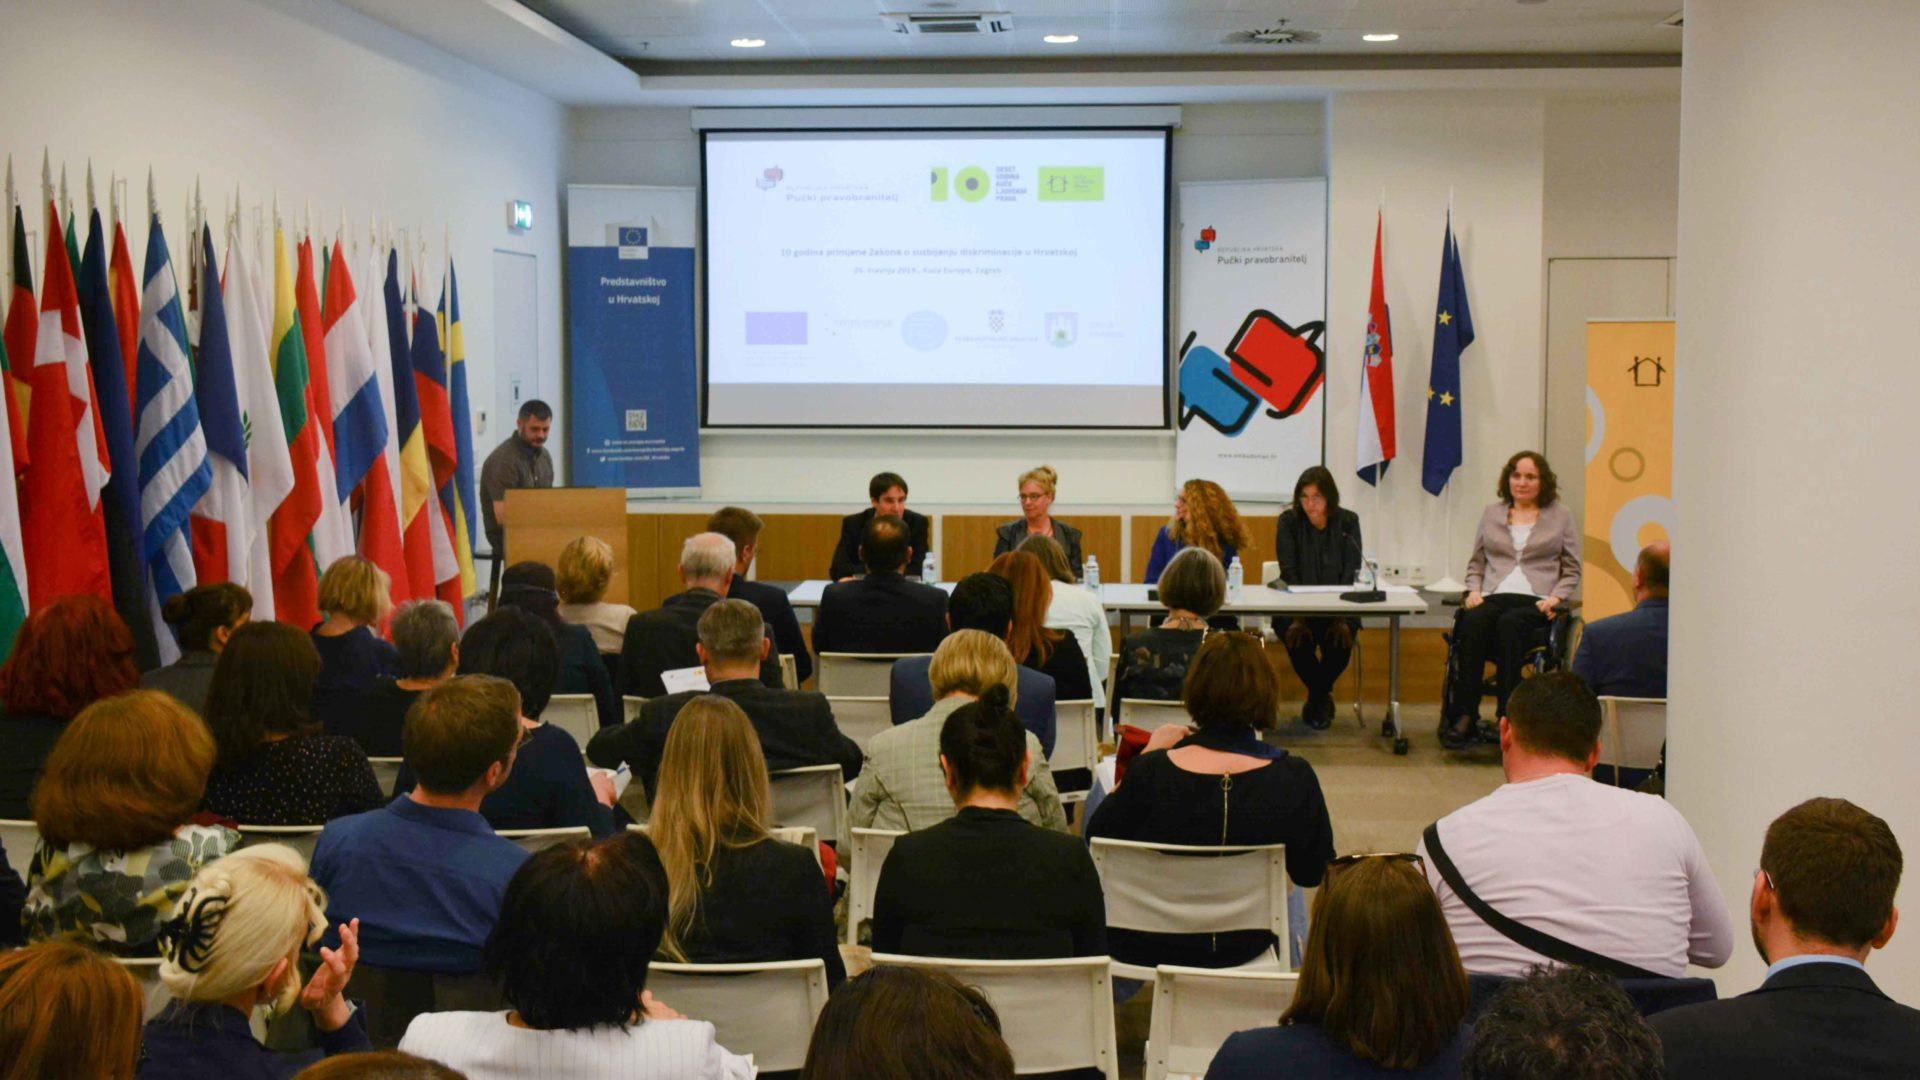 Marking 10 Years of the Anti-Discrimination Act in Croatia